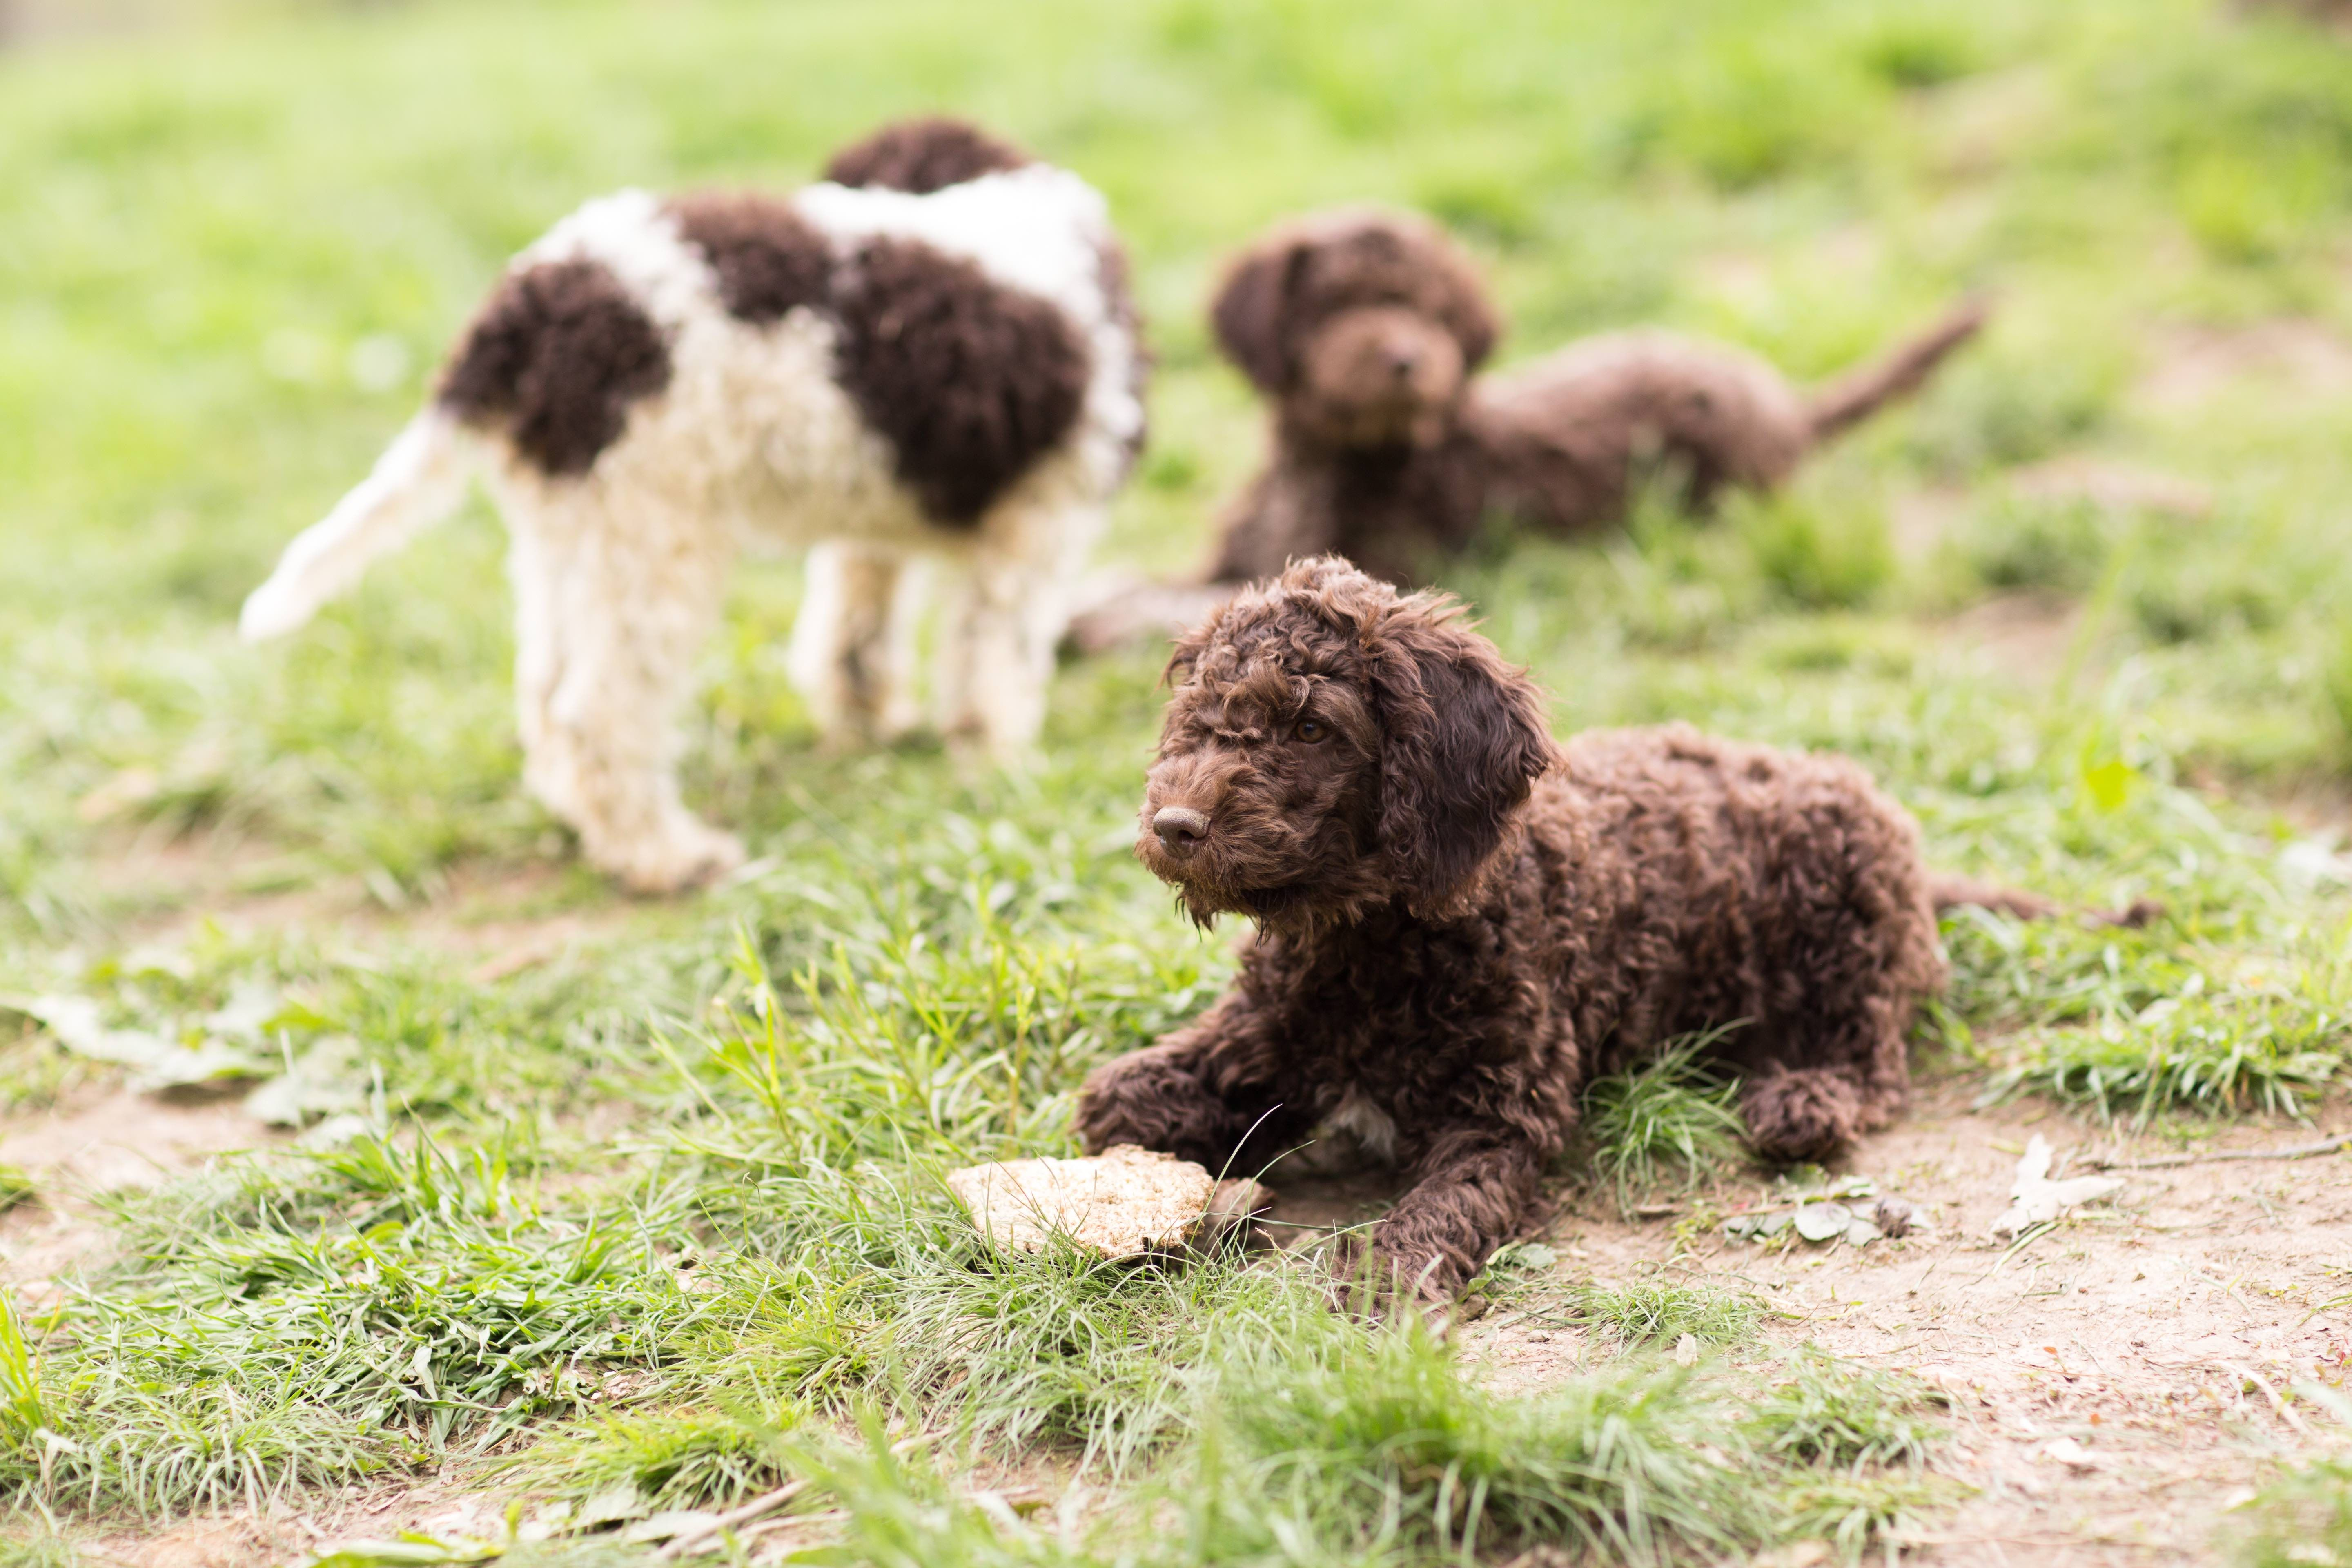 Best Dog Breeders - Best Places To Buy Dogs And Puppies